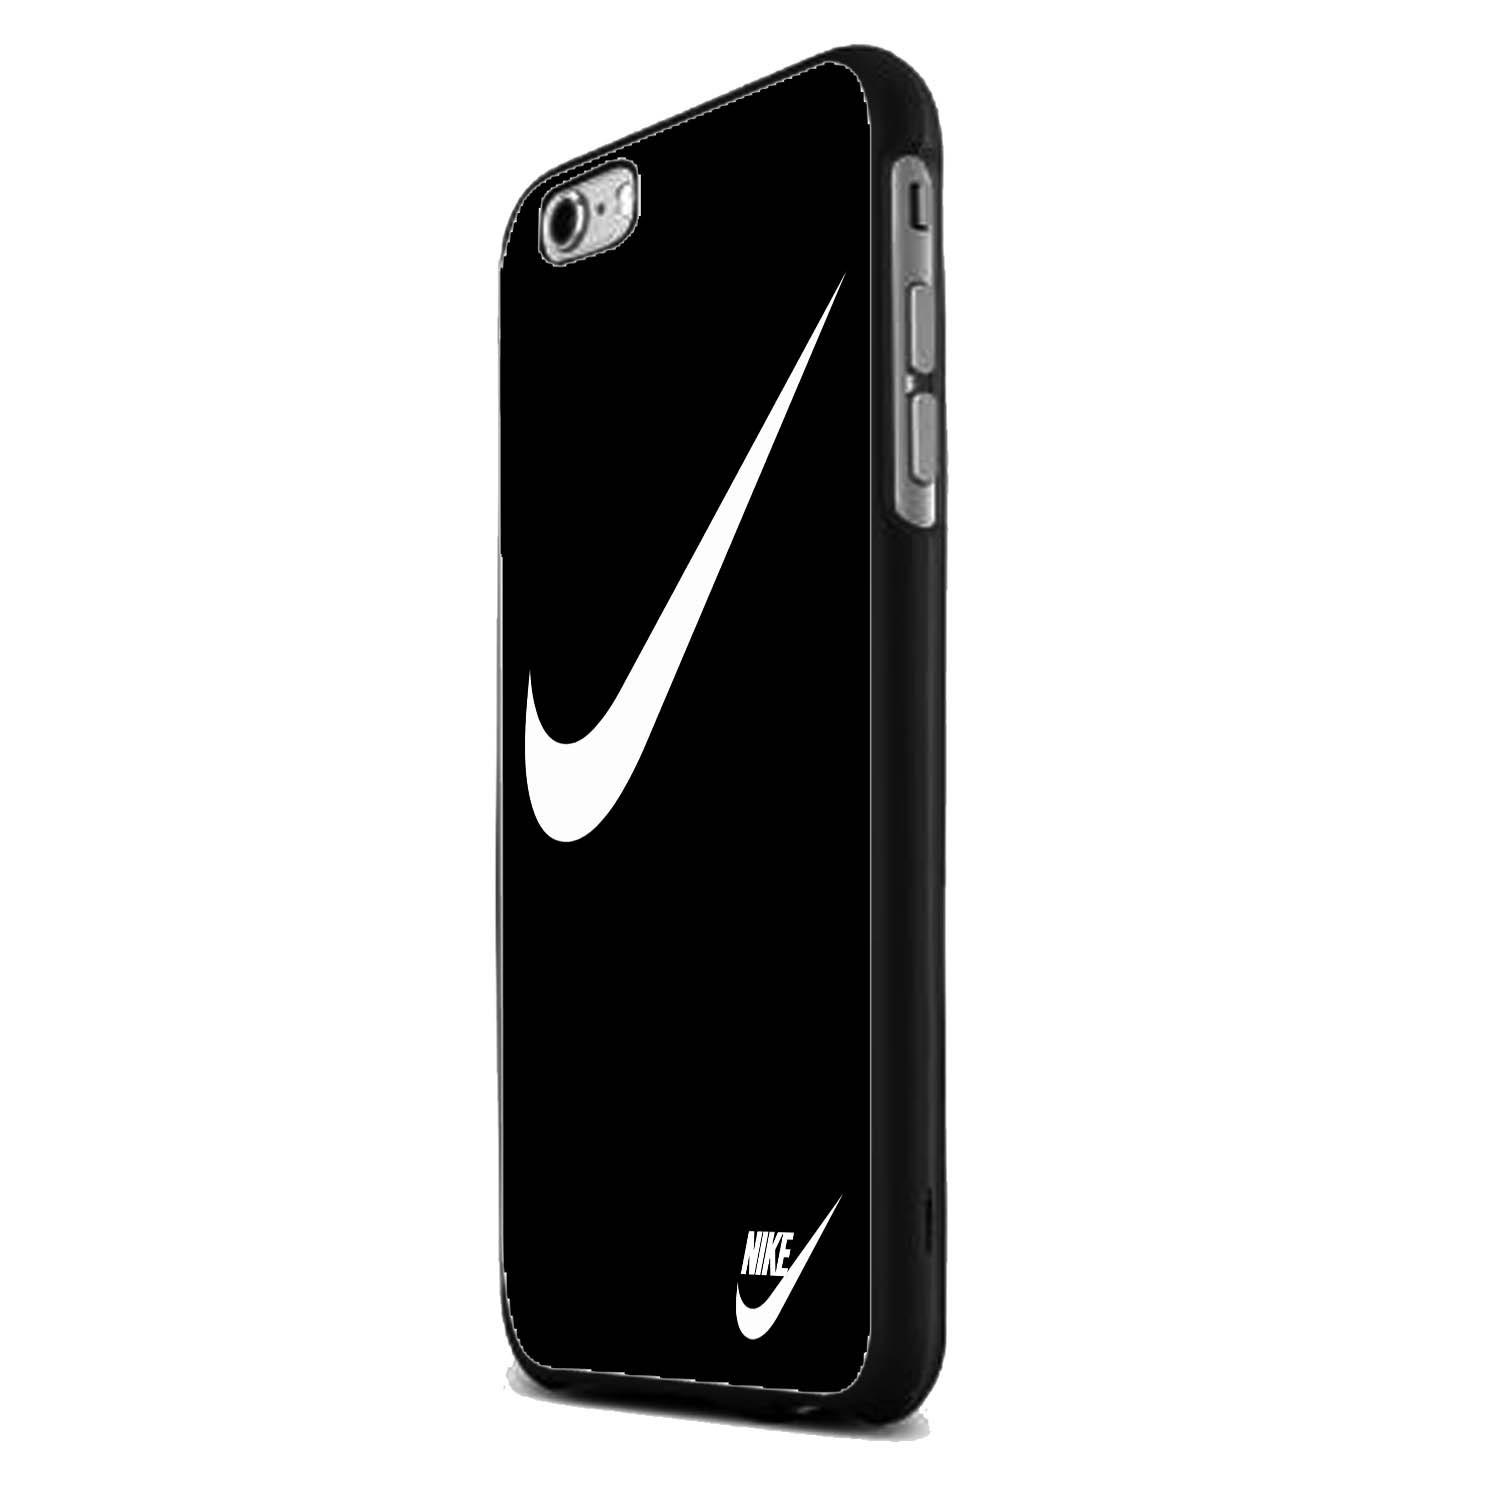 Nike iPhone 6 Case from iphonecasespot.com